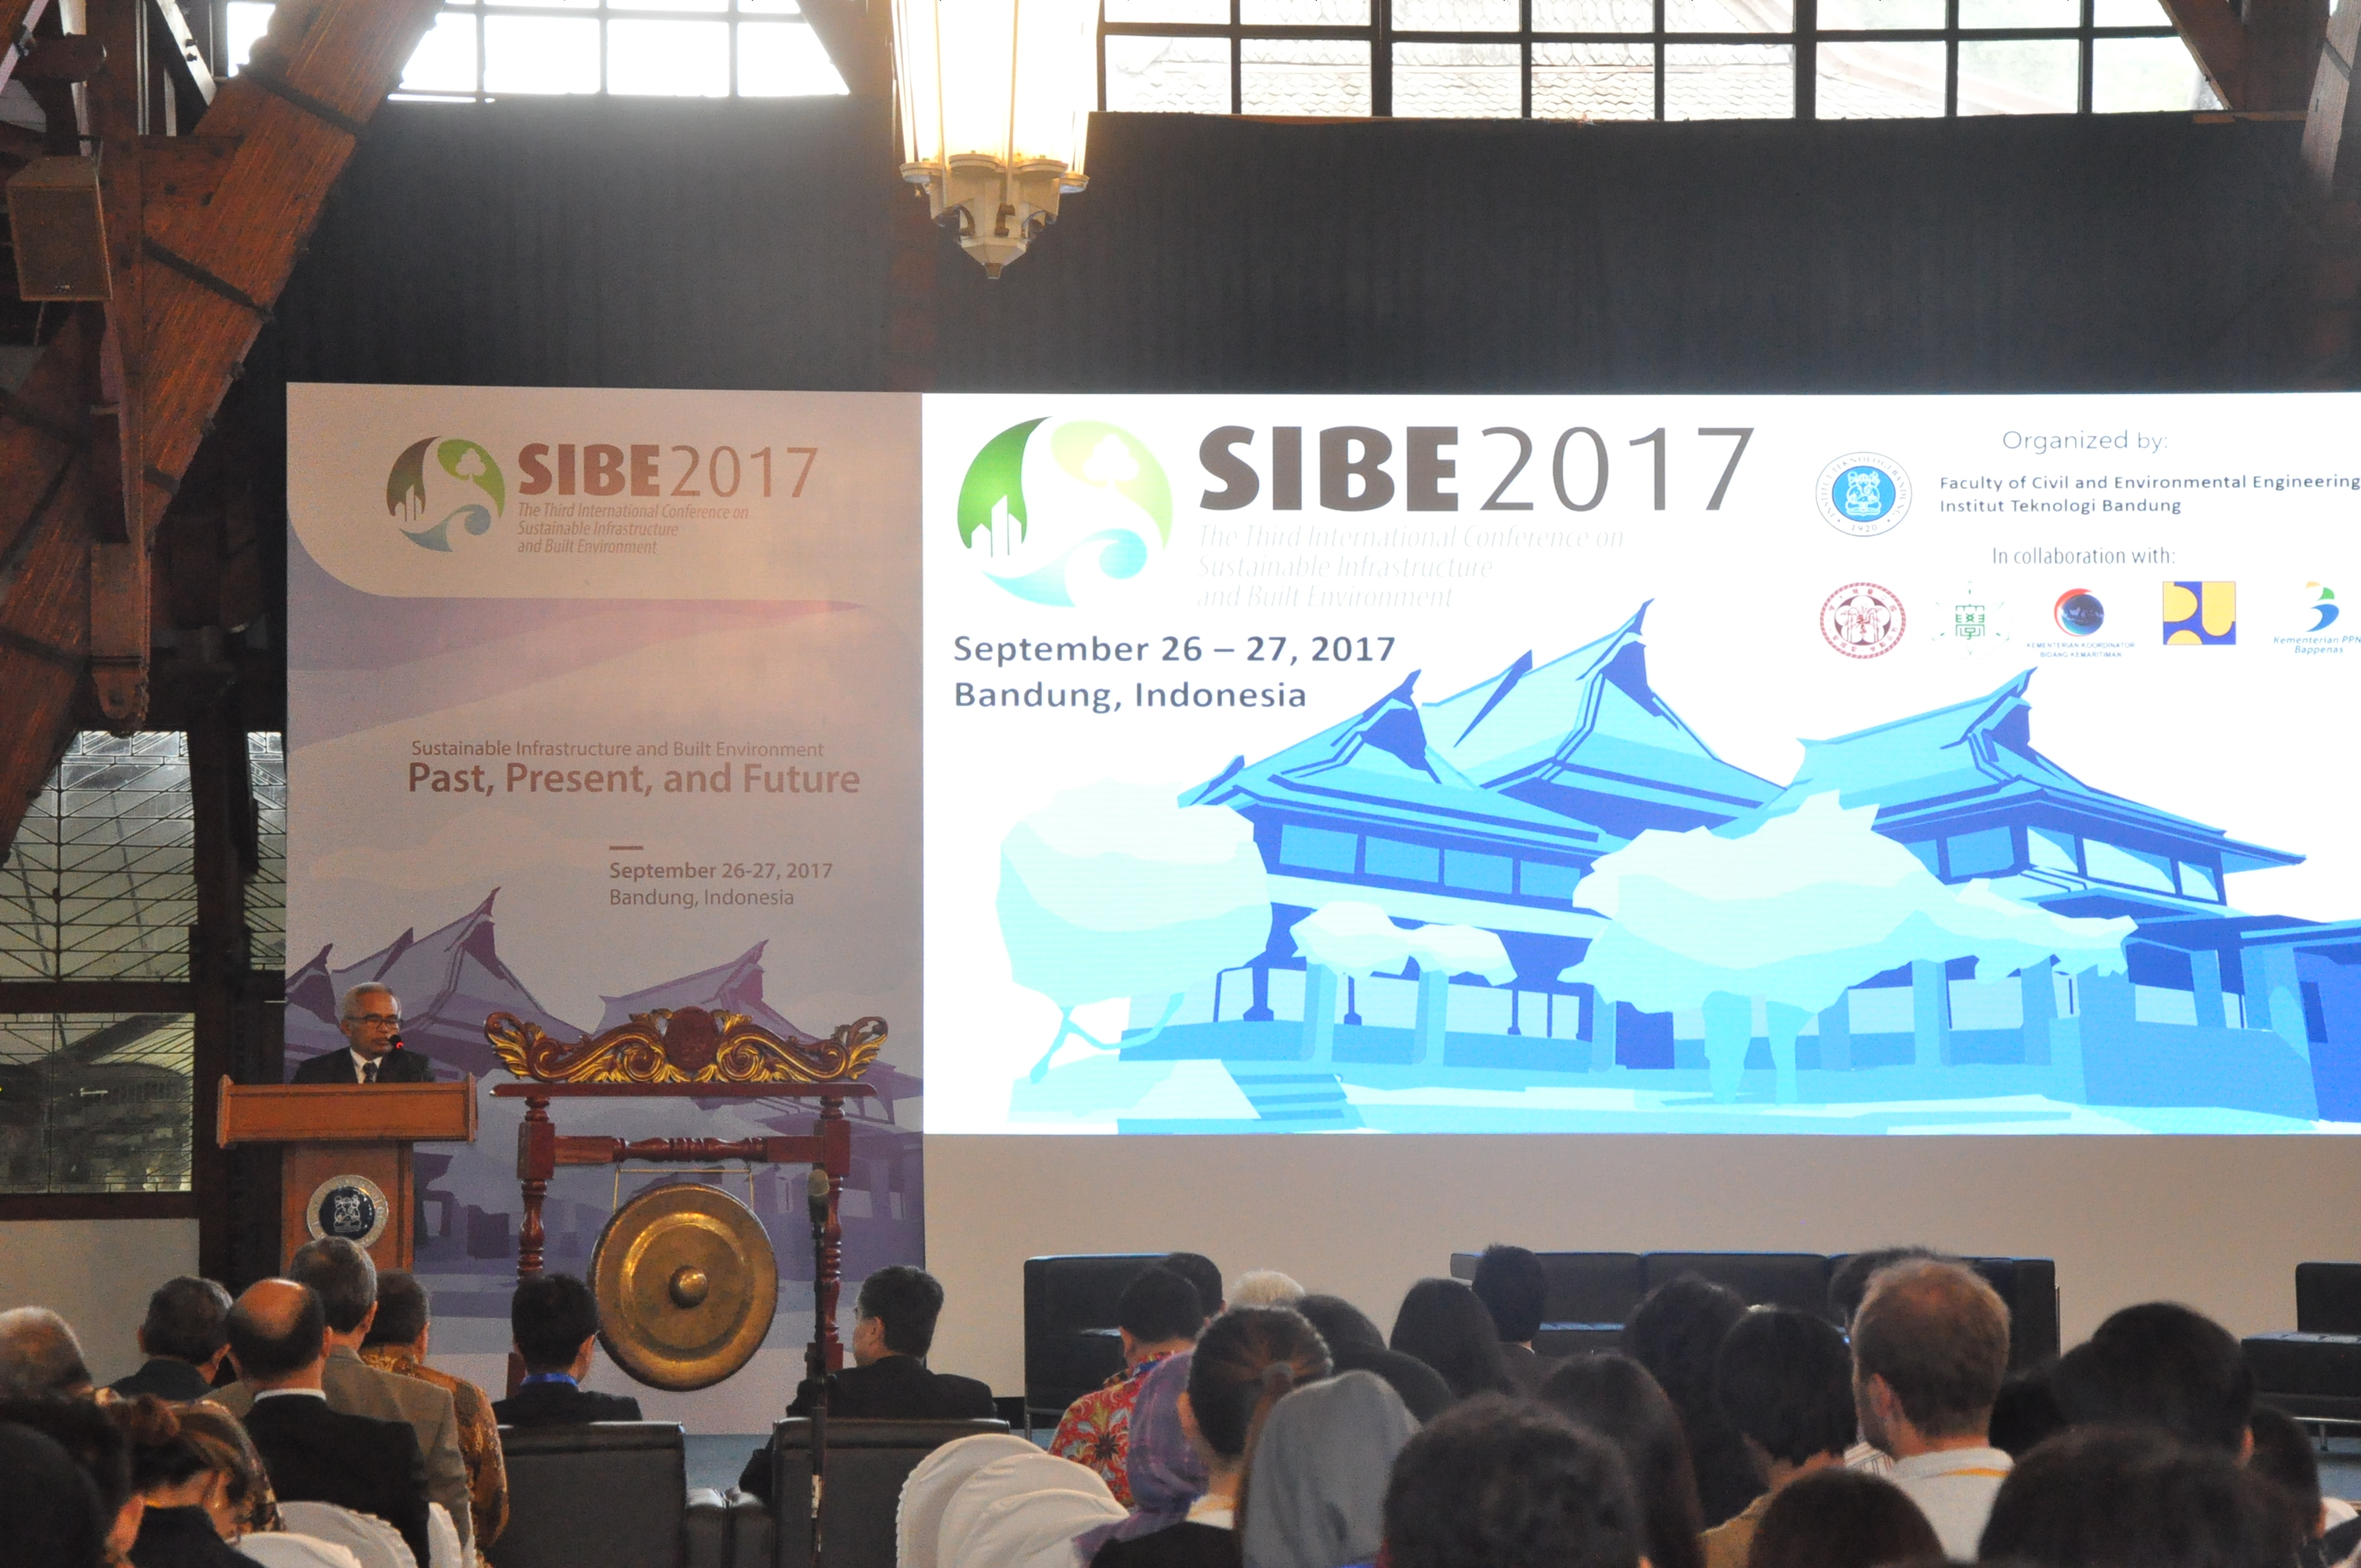 Konferensi Internasional Sustainable Infrastructure and Built Environment (SIBE) 2017